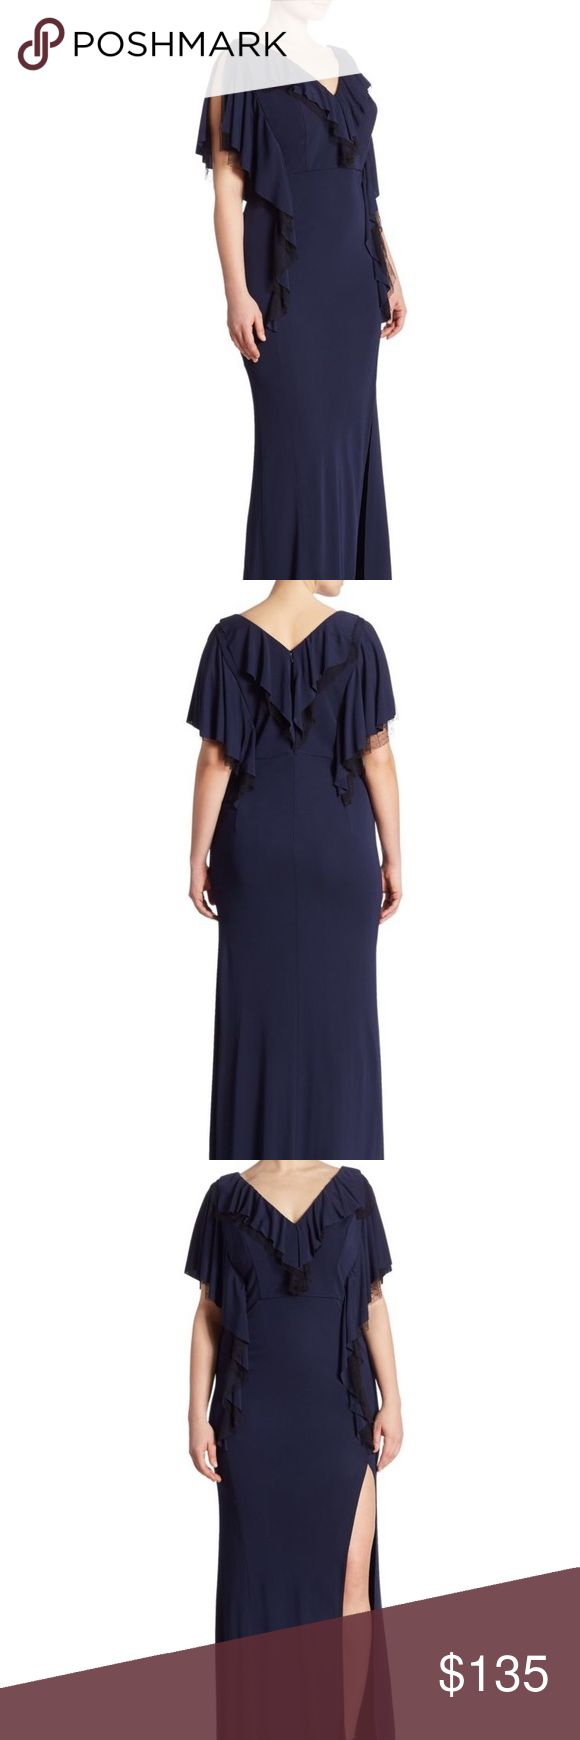 ABS Allen Schwartz dress Like new!  Not sure if this was ever worn or not but unable to find a flaw!  Matte jersey ruffle gown in navy with black trimming under ruffle. This is a gorgeous dress that is a 1x (14-16).  Perfect gown for a holiday party!  Please ask if u have any questions! ABS Allen Schwartz Dresses Maxi